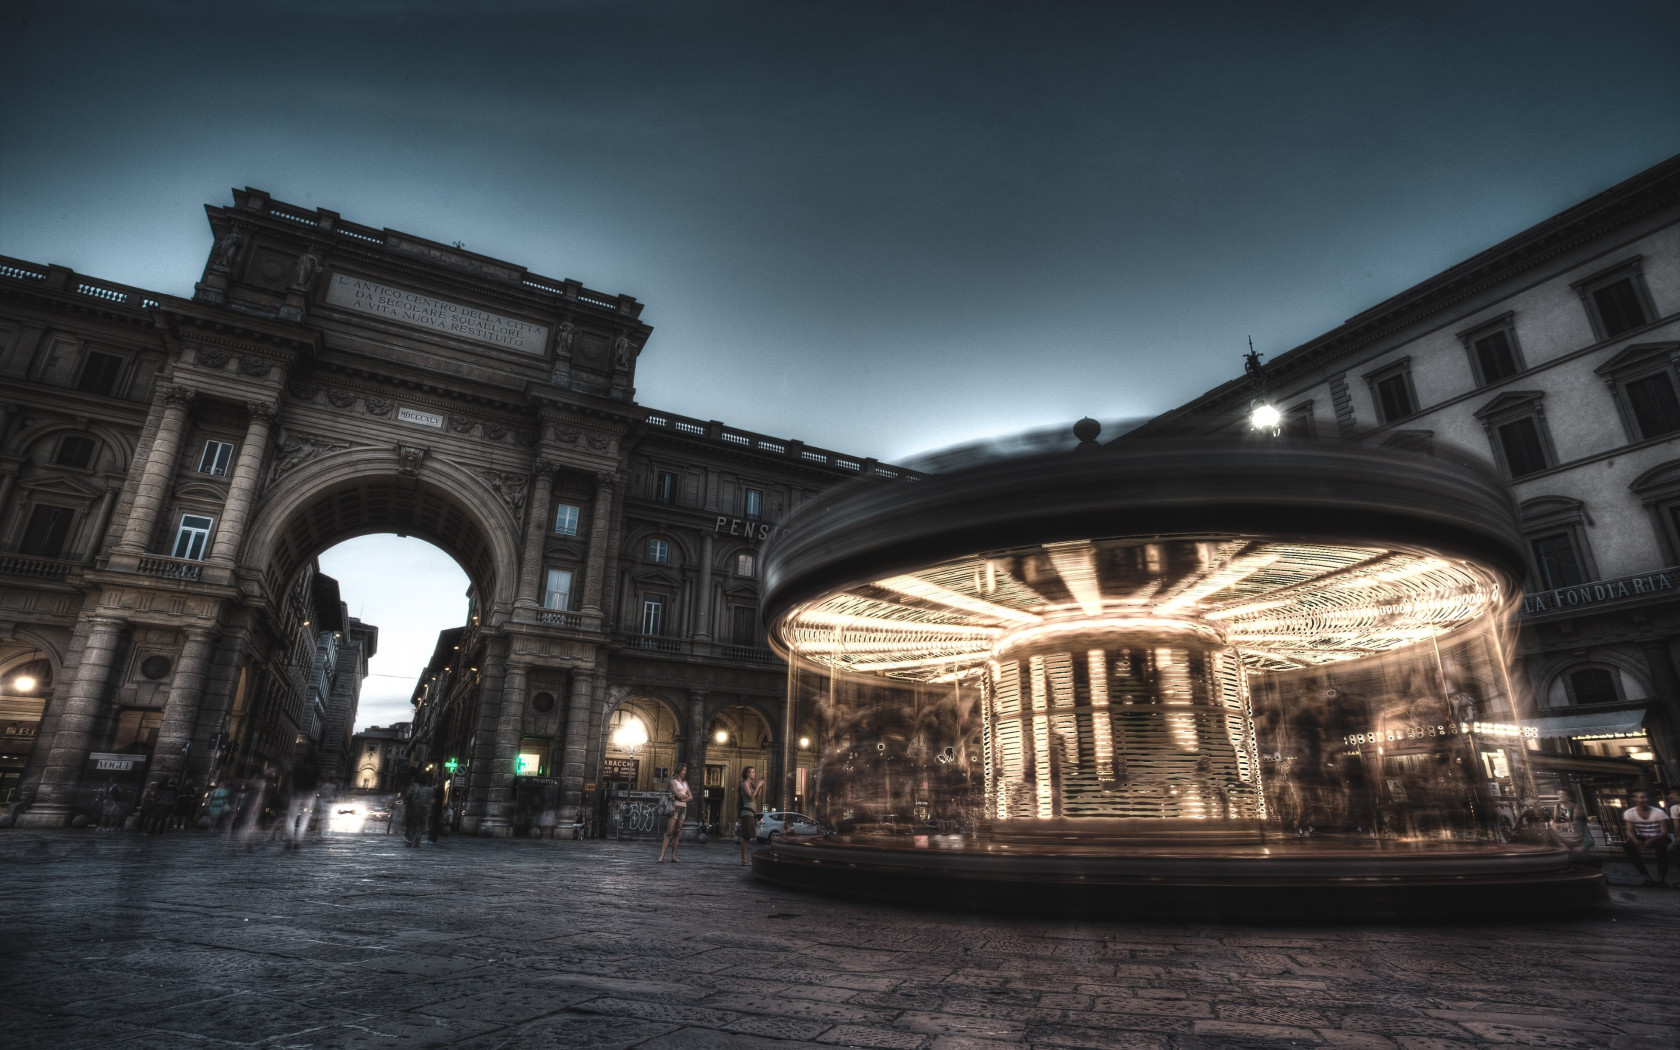 Carousel, people and buildings from Florence | 1680x1050 wallpaper